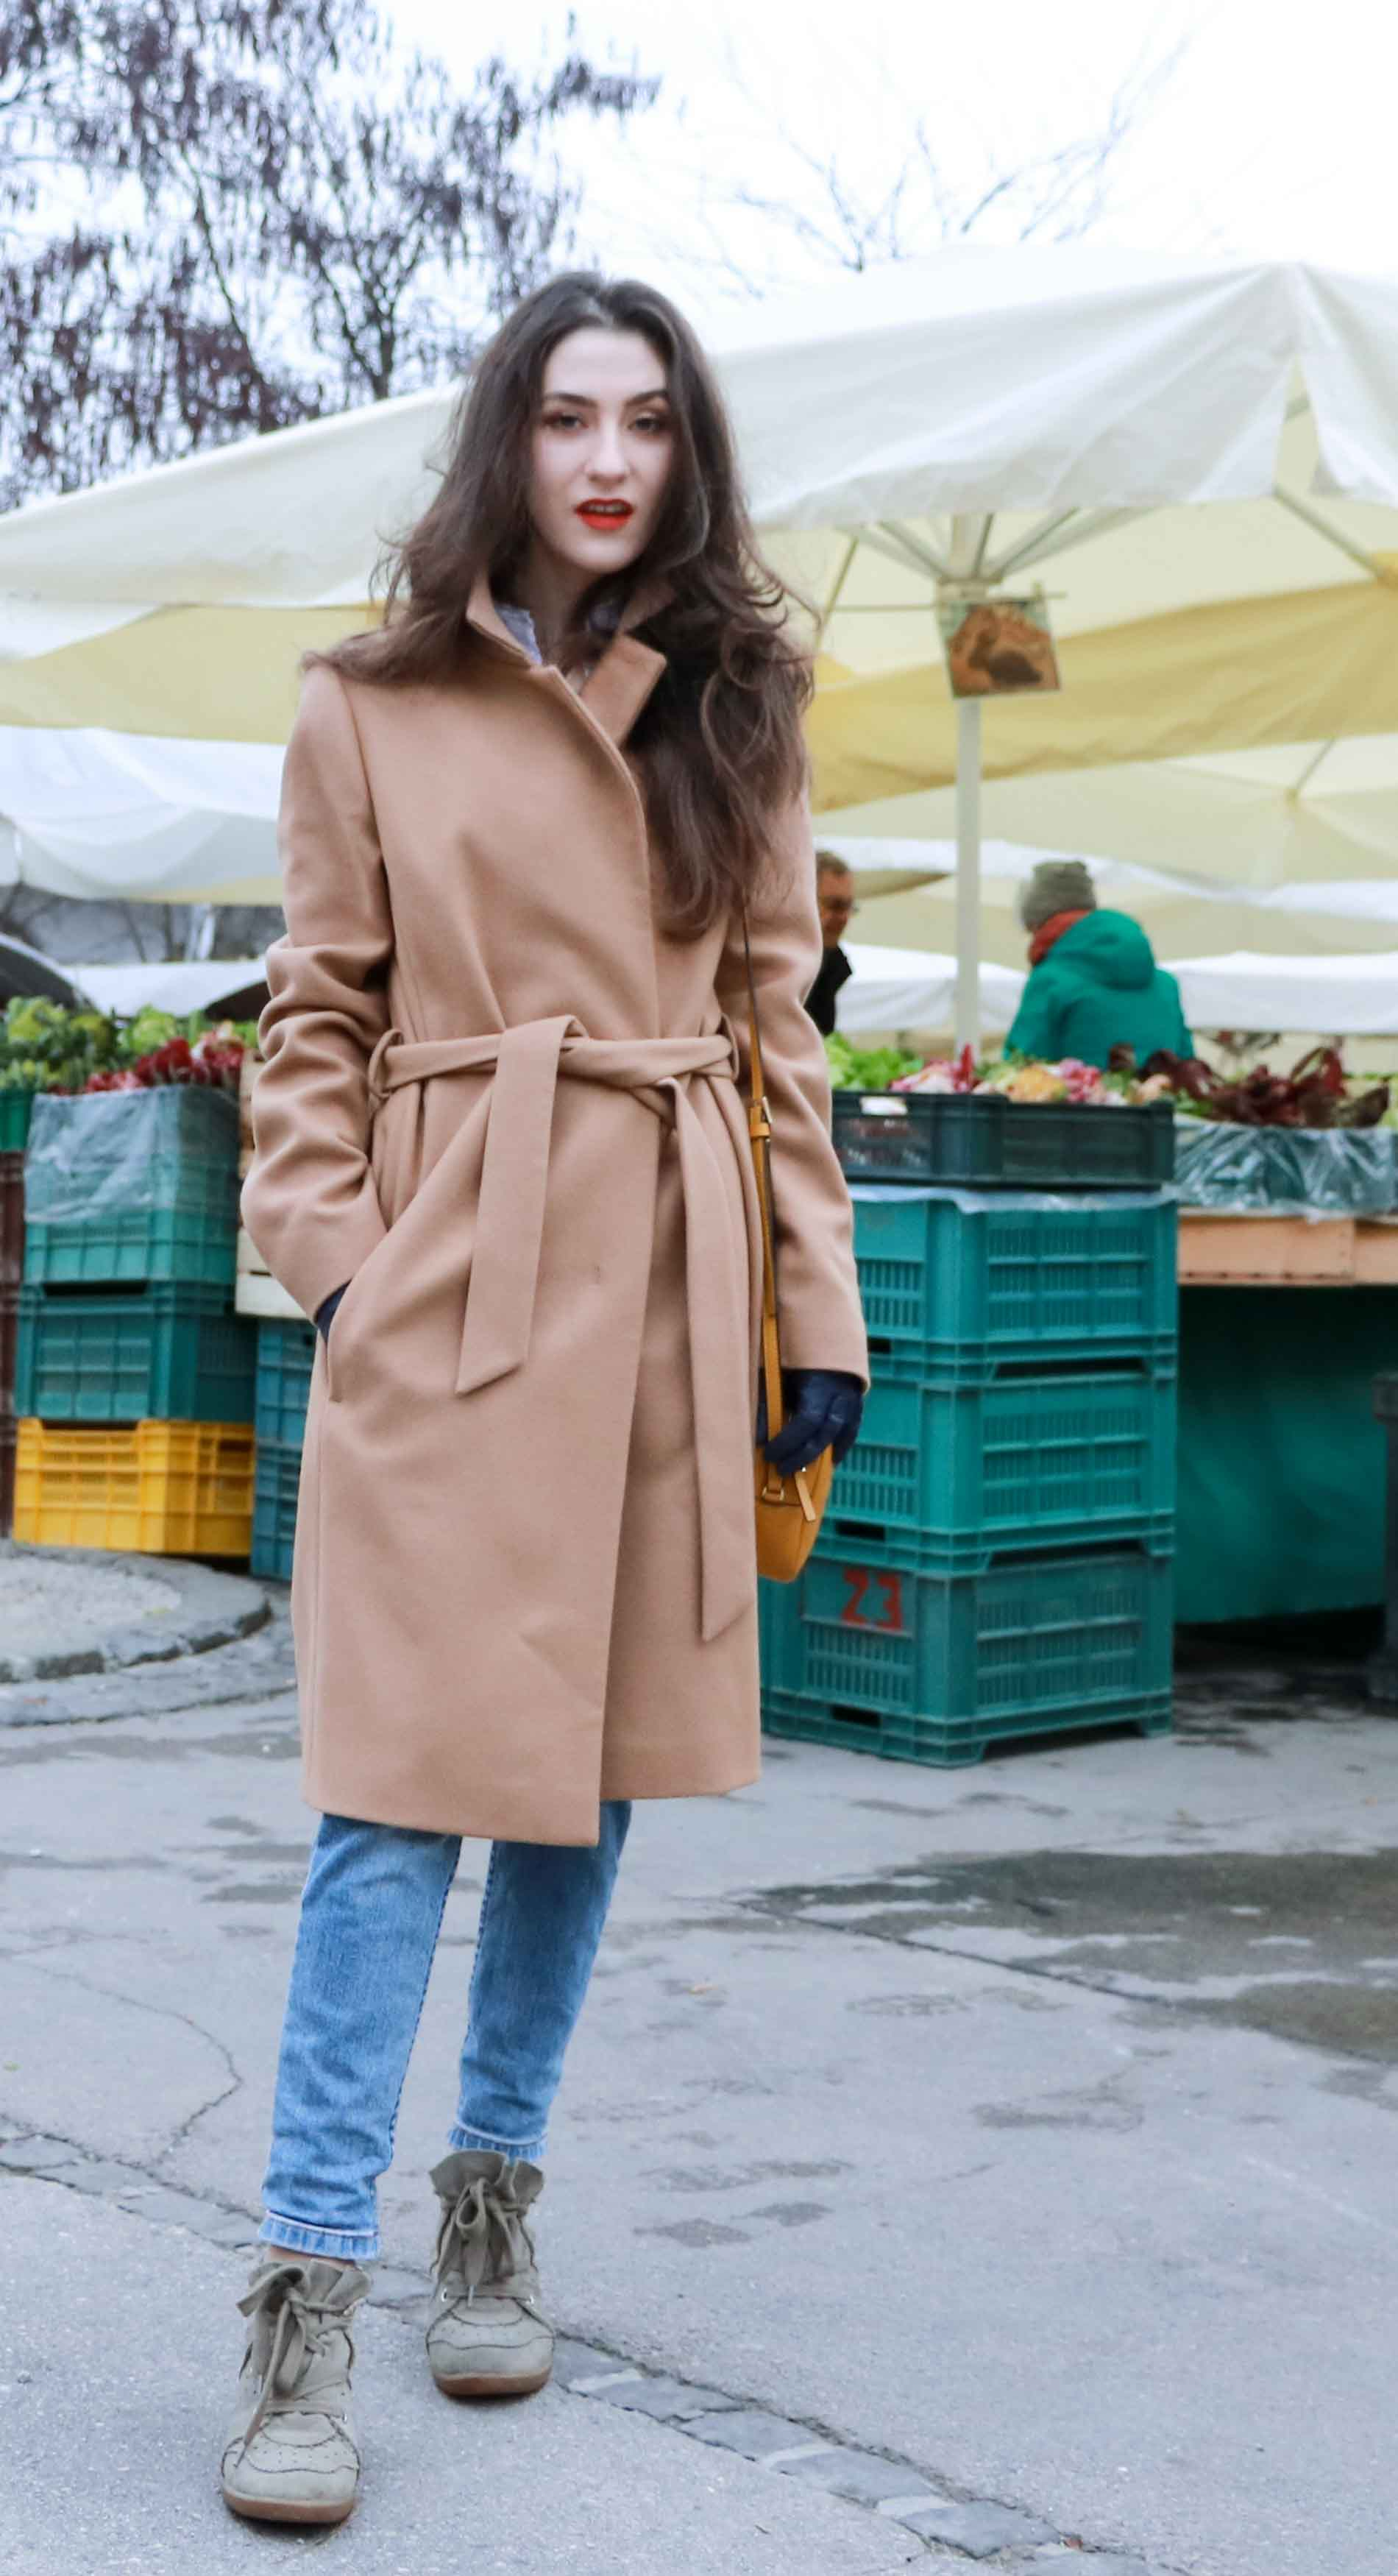 Fashion Blogger Veronika Lipar of Brunette from Wall Street dressed in ESCADA wrap camel coat, A.P.C. blue jeans, Isabel Marant olive Bobby Sneakers, yellow shoulder bag from Escada, white Victorian blouse at the grocery's market